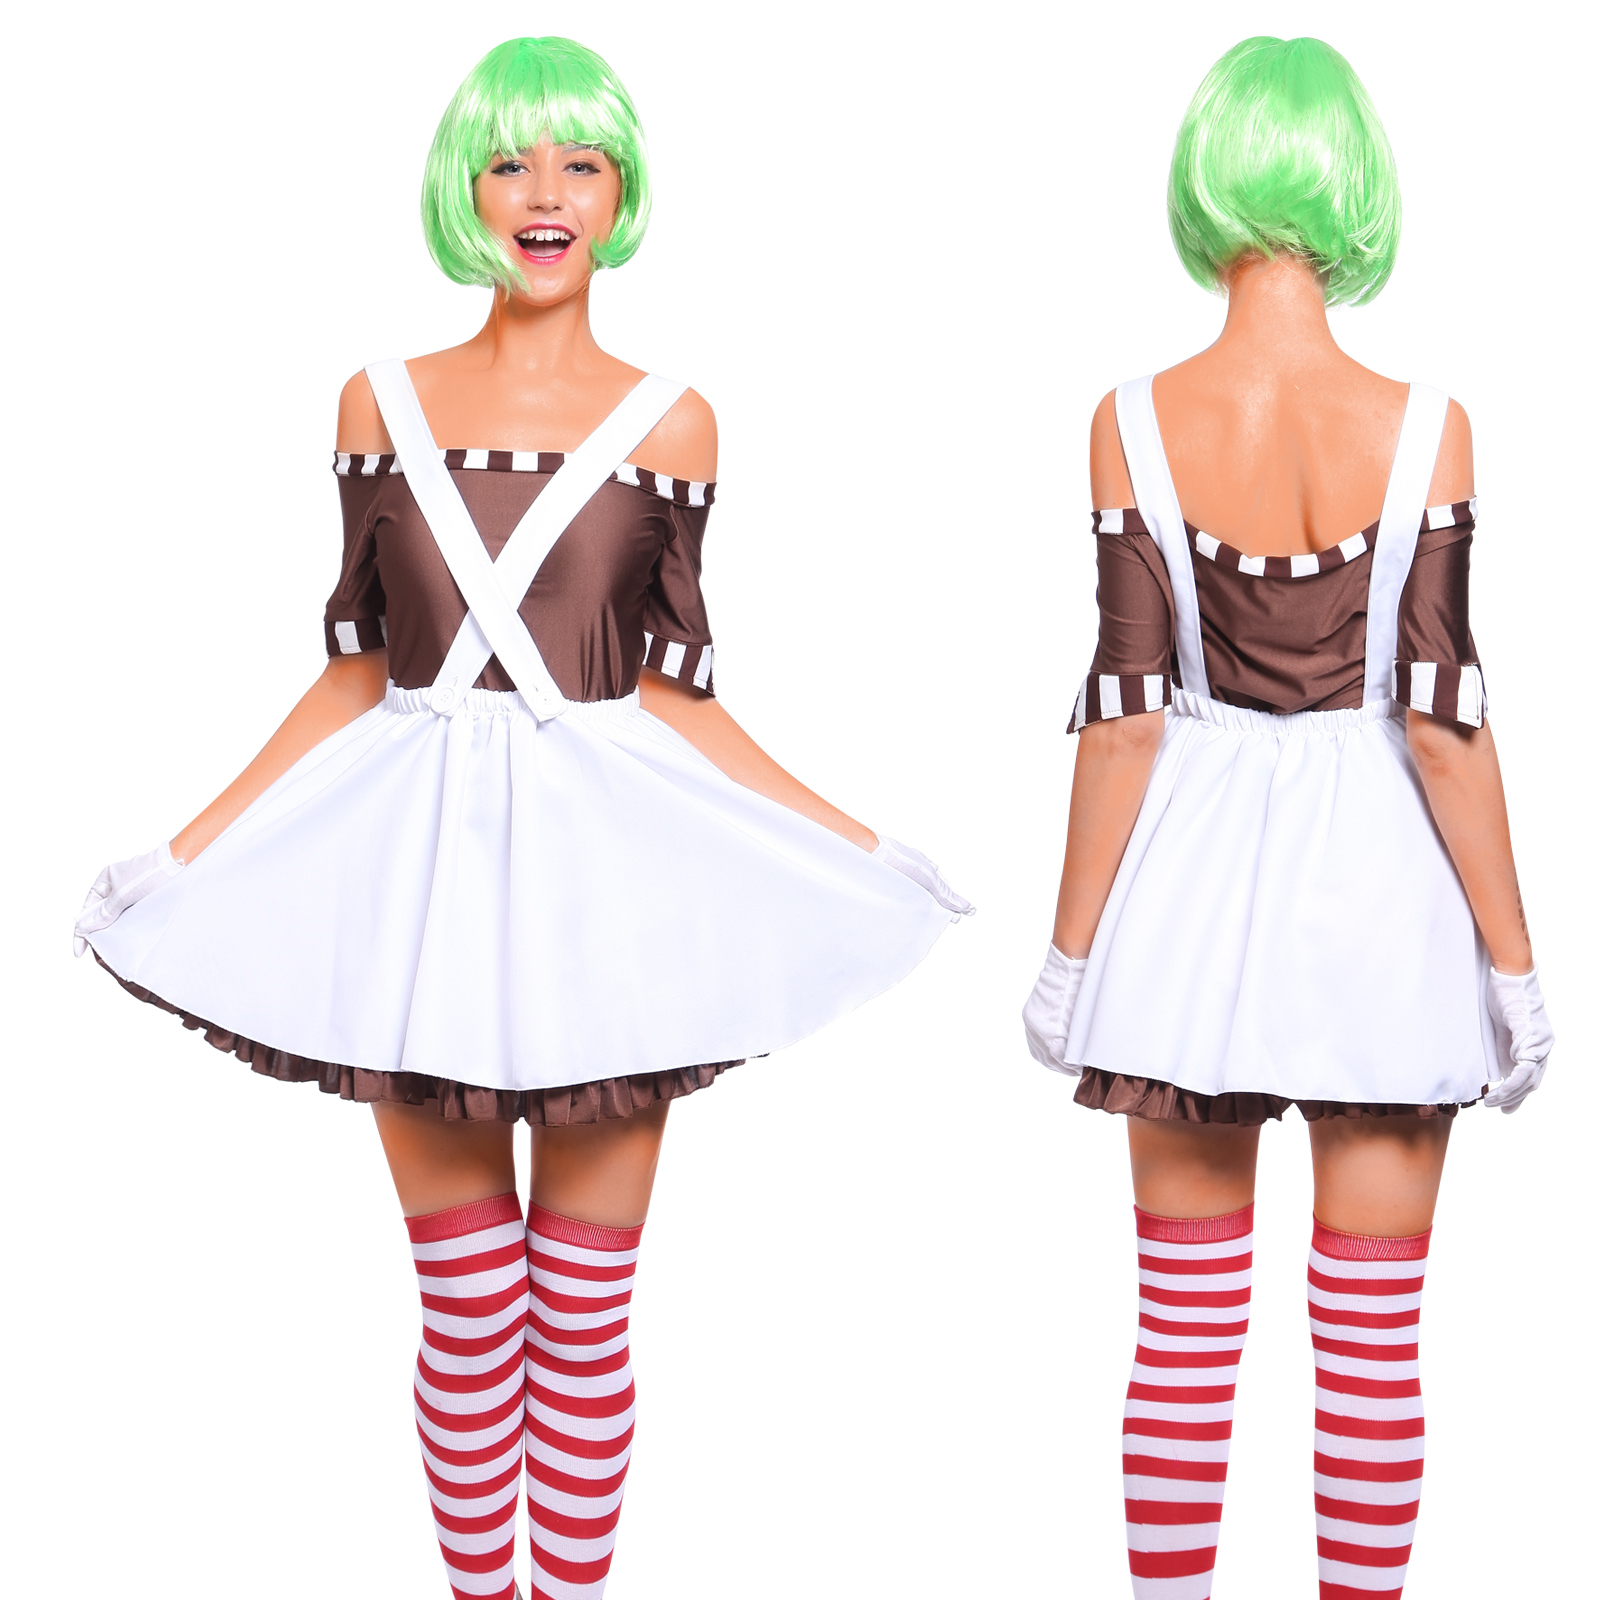 Oompa Chocolate Factory Worker Loompa Wig 111  sc 1 st  Colorful Cheap Wigs : oompa loompa costumes for adults  - Germanpascual.Com